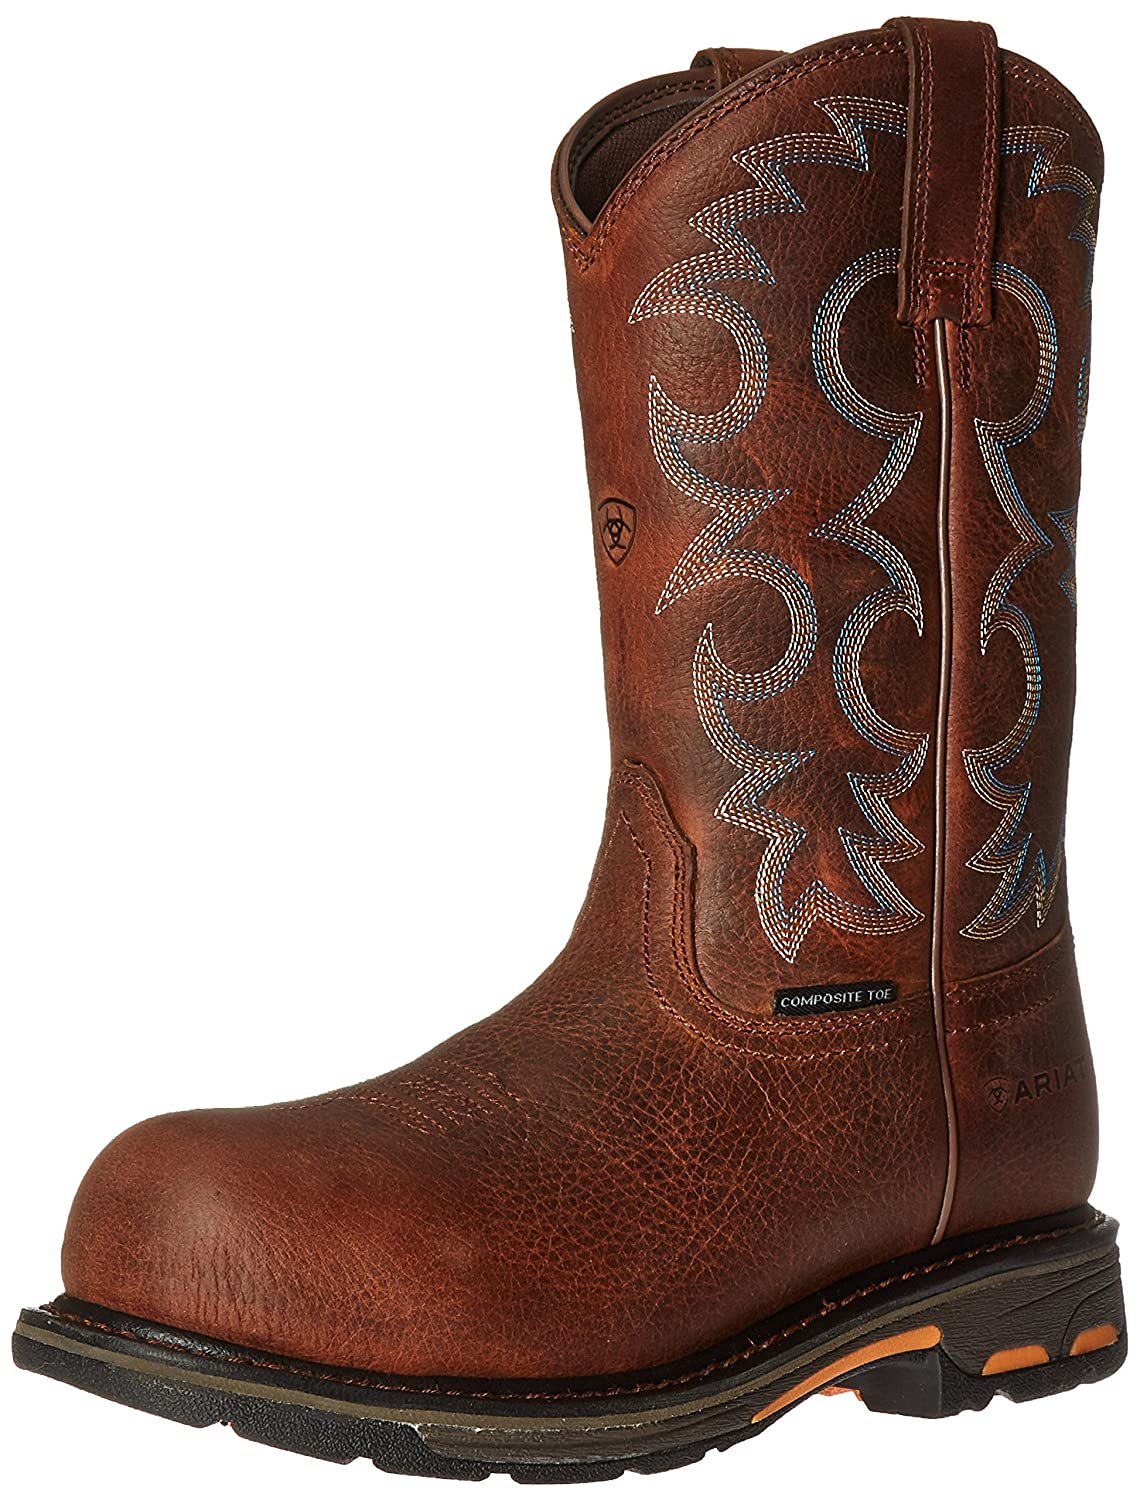 Ariat Women's Workhog Composite Toe Work Boot B01BQT6PVQ 9 W US|Nutty Brown